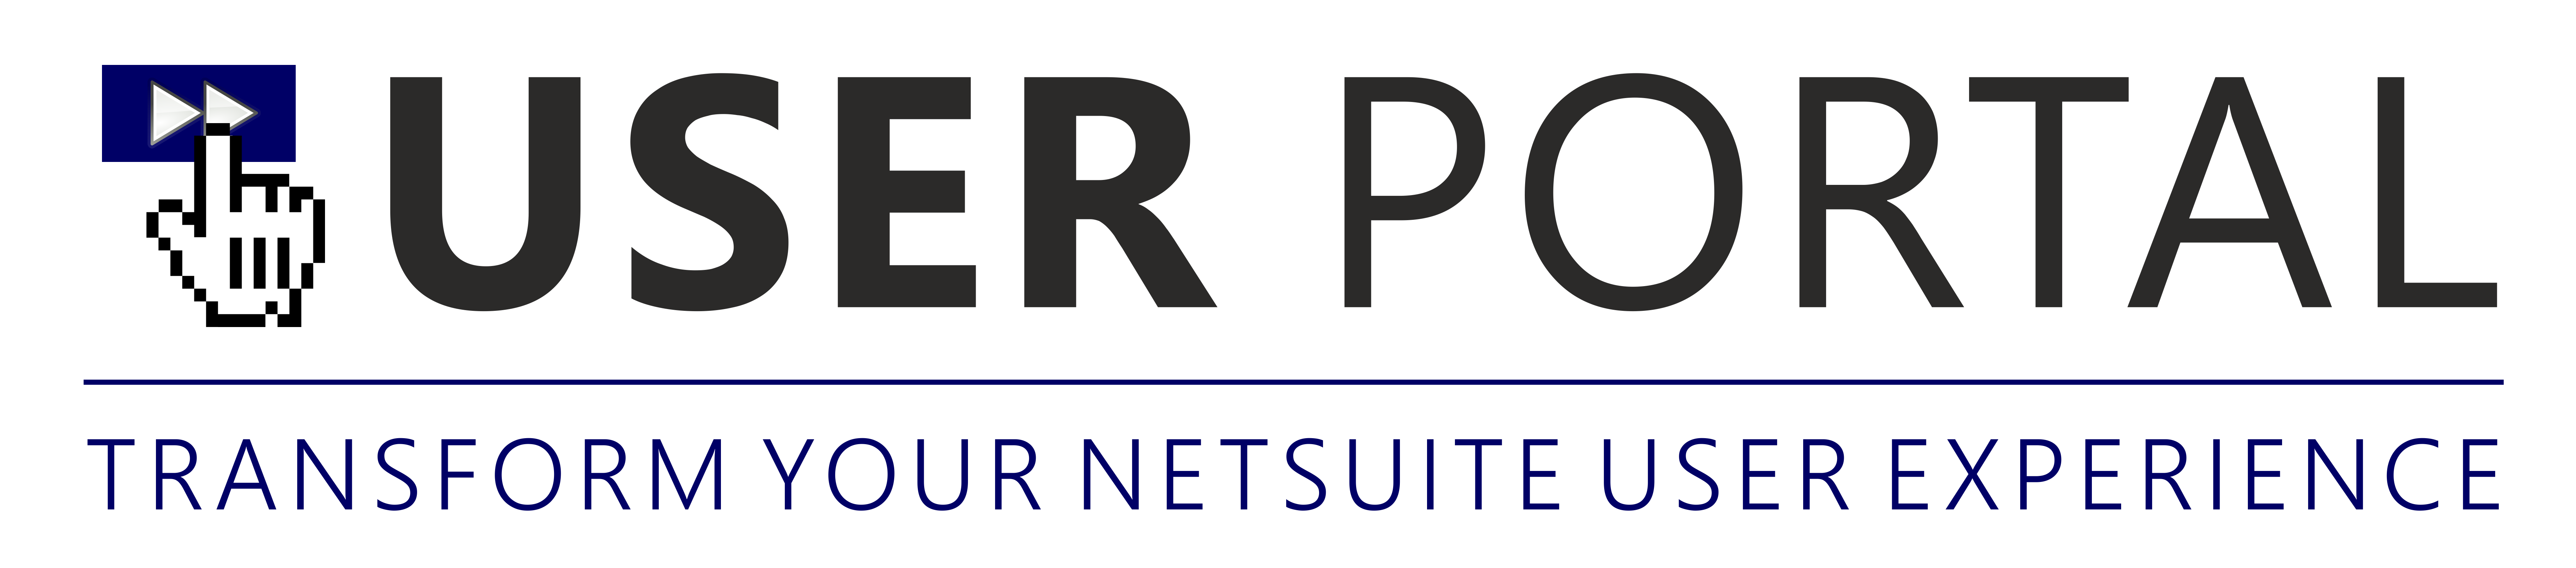 User Portal for NetSuite Logo